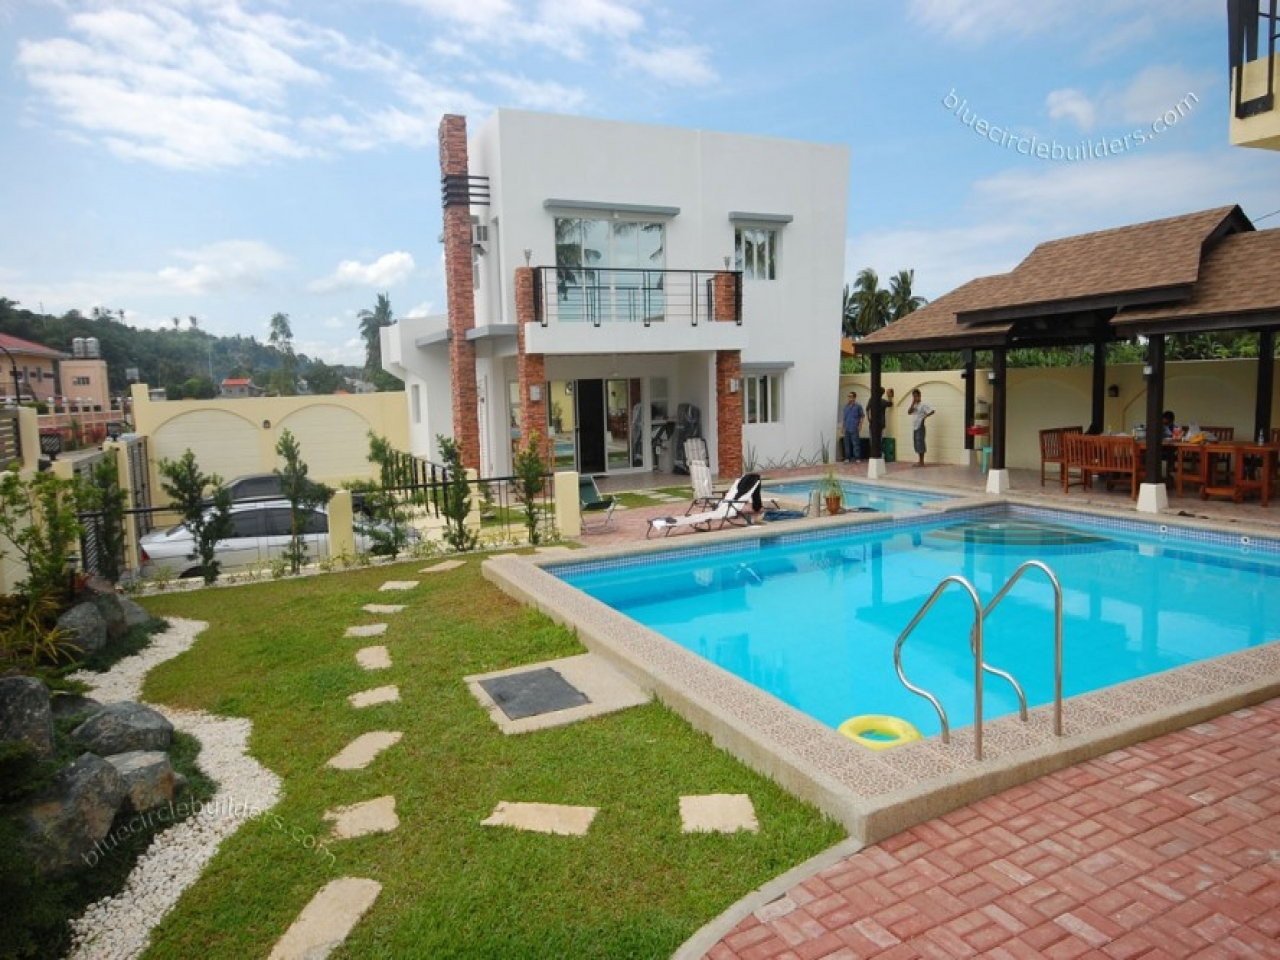 House plans with swimming pool designs training plans for Pool design certification